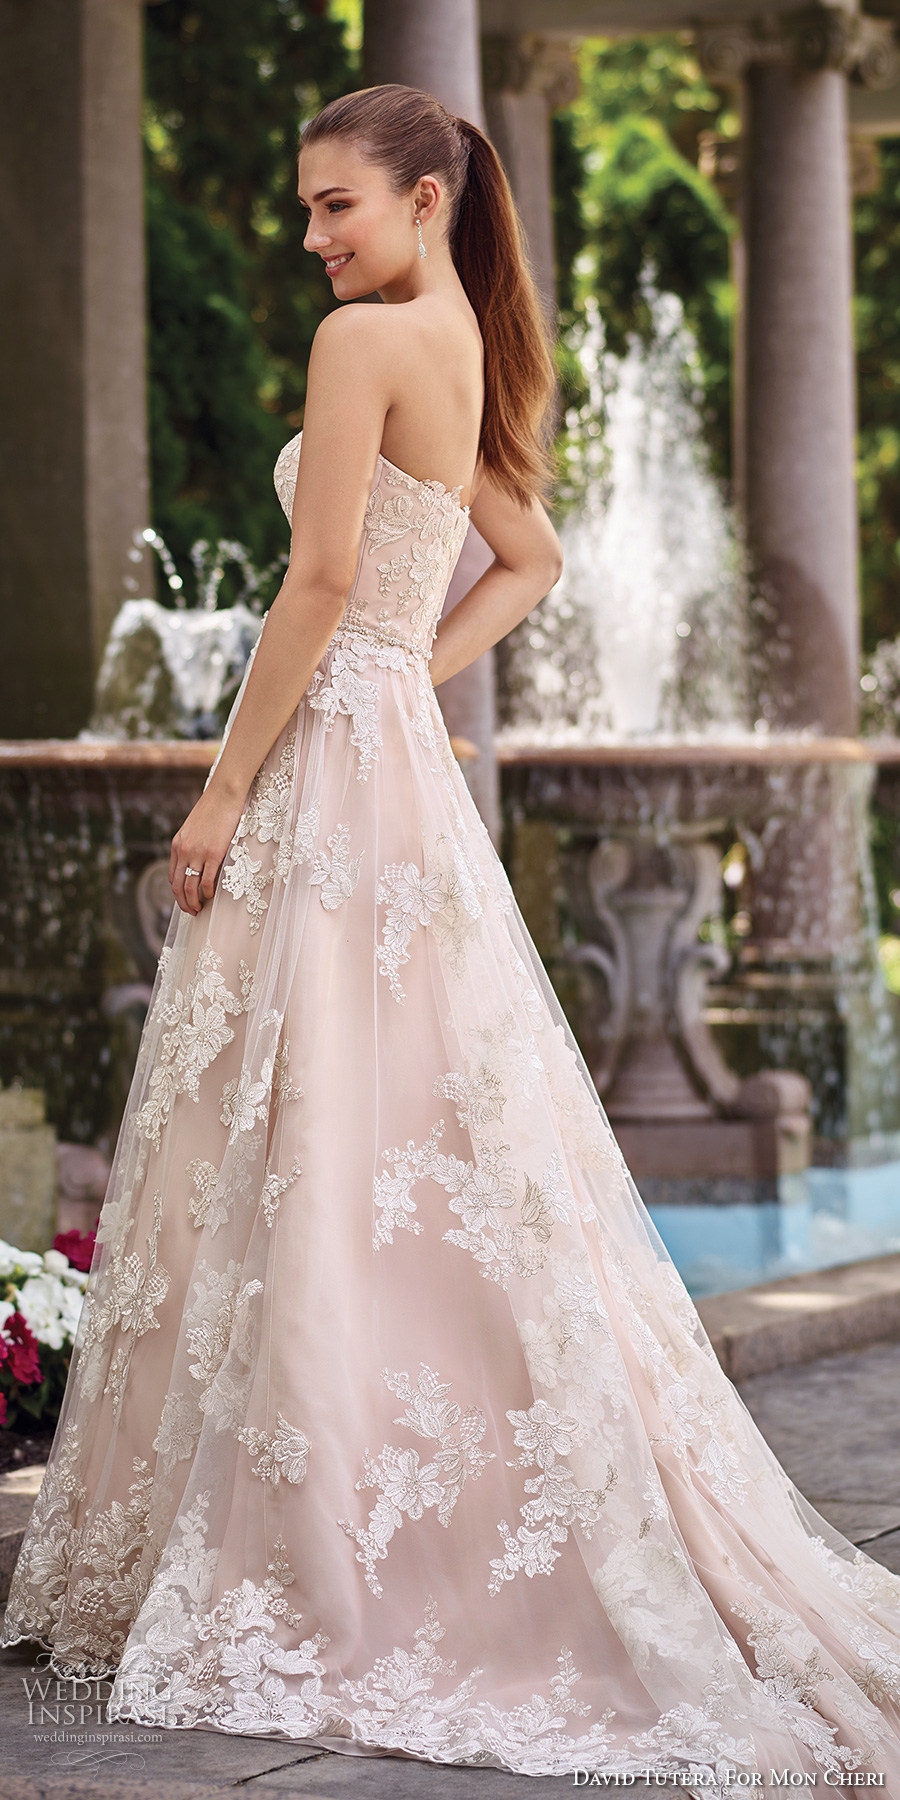 David tutera for mon cheri spring 2017 wedding dresses wedding david tutera mc spring 2017 bridal strapless sweetheart neckline full embellishment lace romantic blush color a junglespirit Image collections